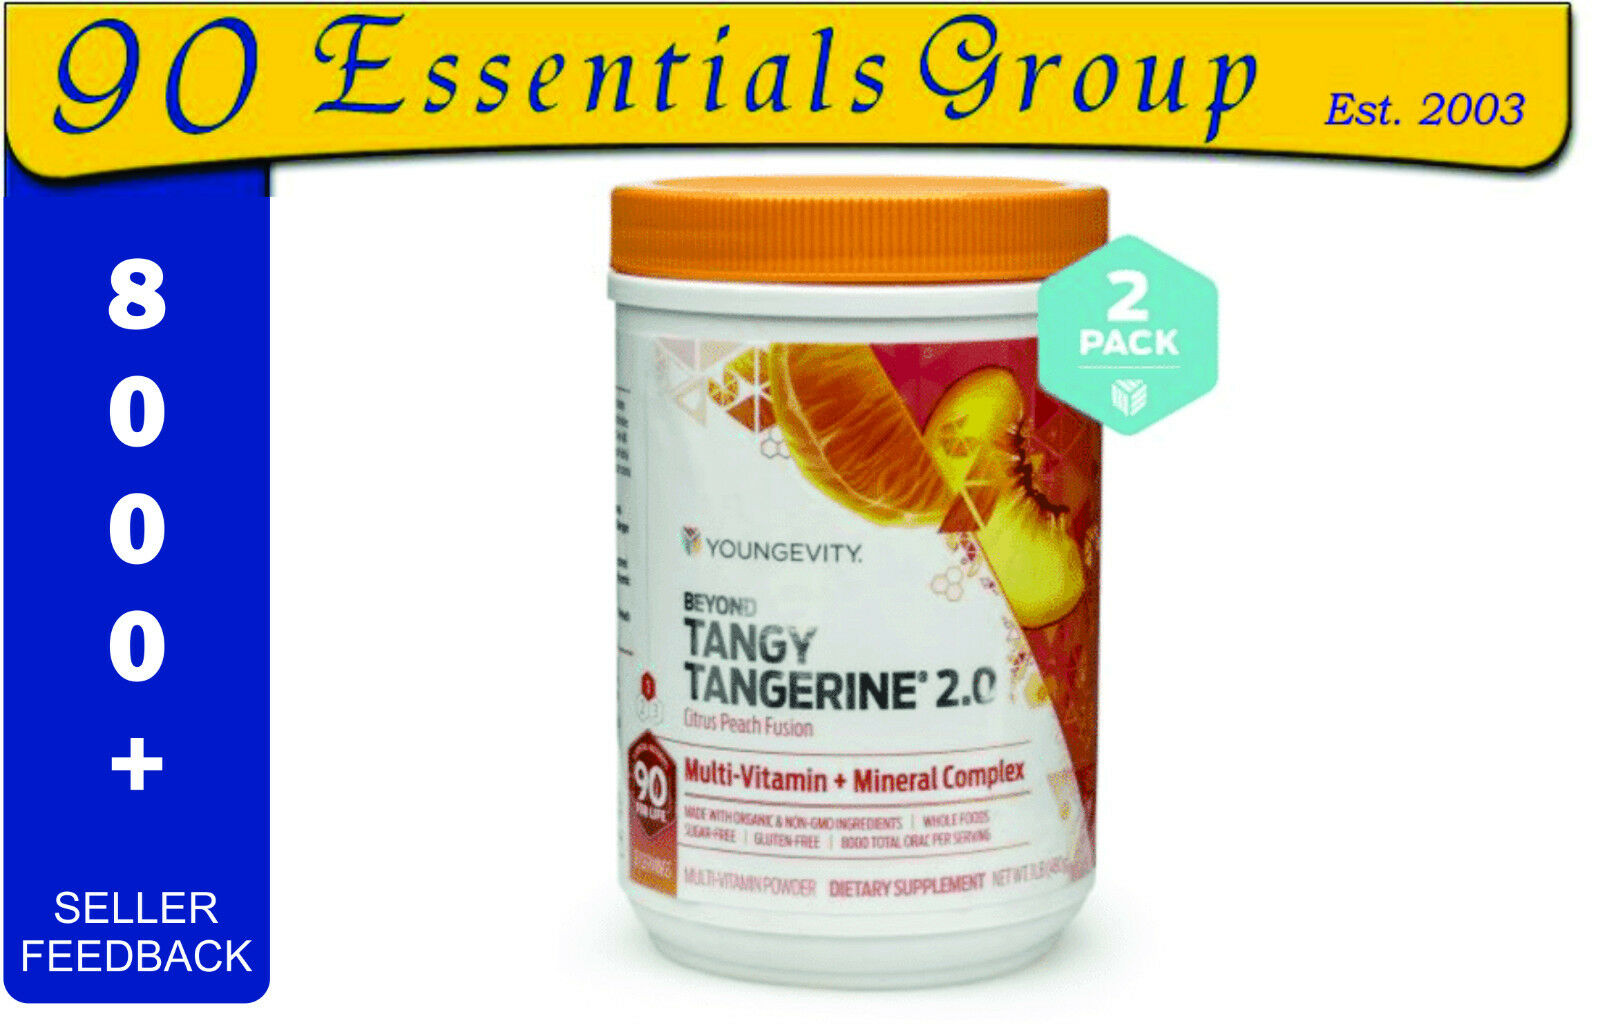 BEYOND TANGY TANGERINE 2.0 Peach Fusion (2- 480g Cans) by Youngevity ...